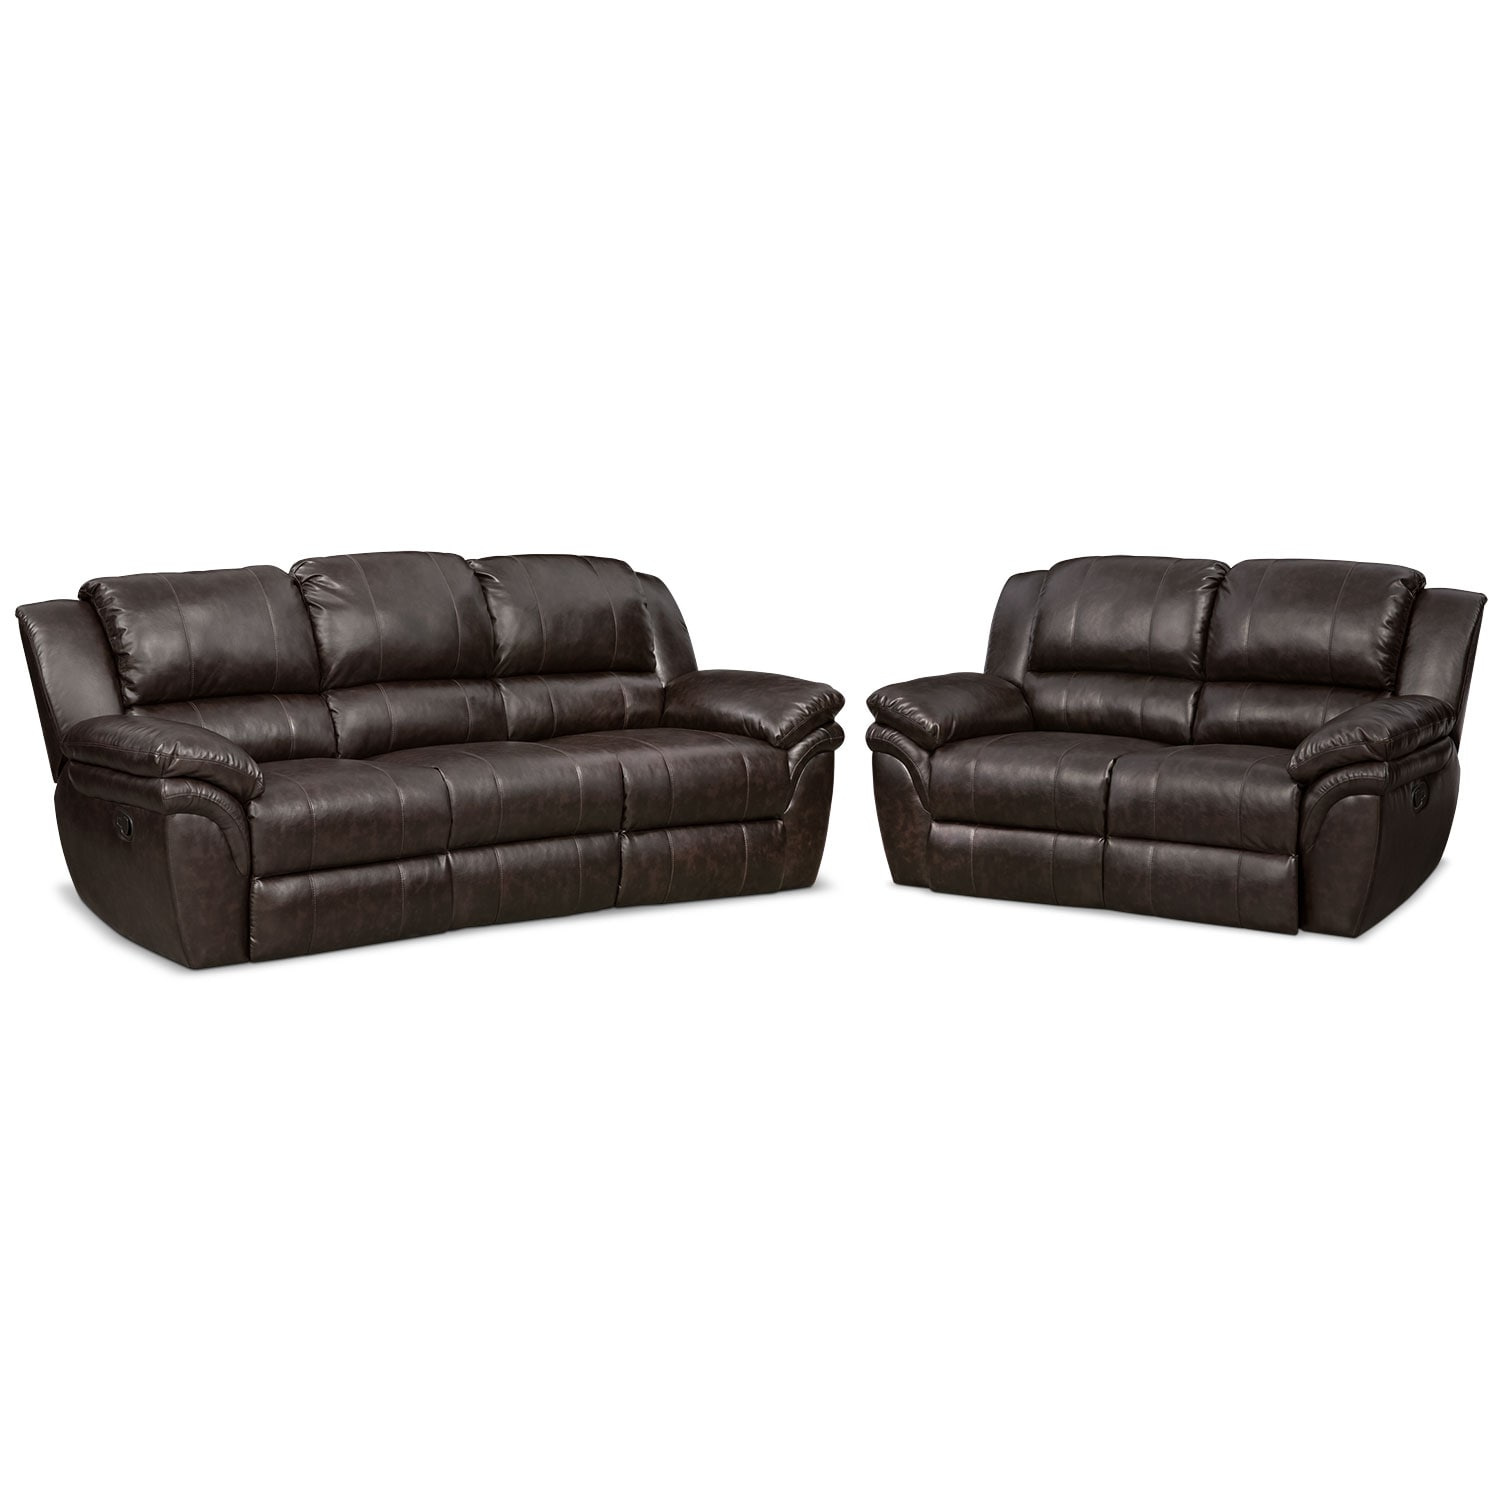 Aldo Manual Reclining Sofa And Loveseat Set Brown Value City Furniture And Mattresses